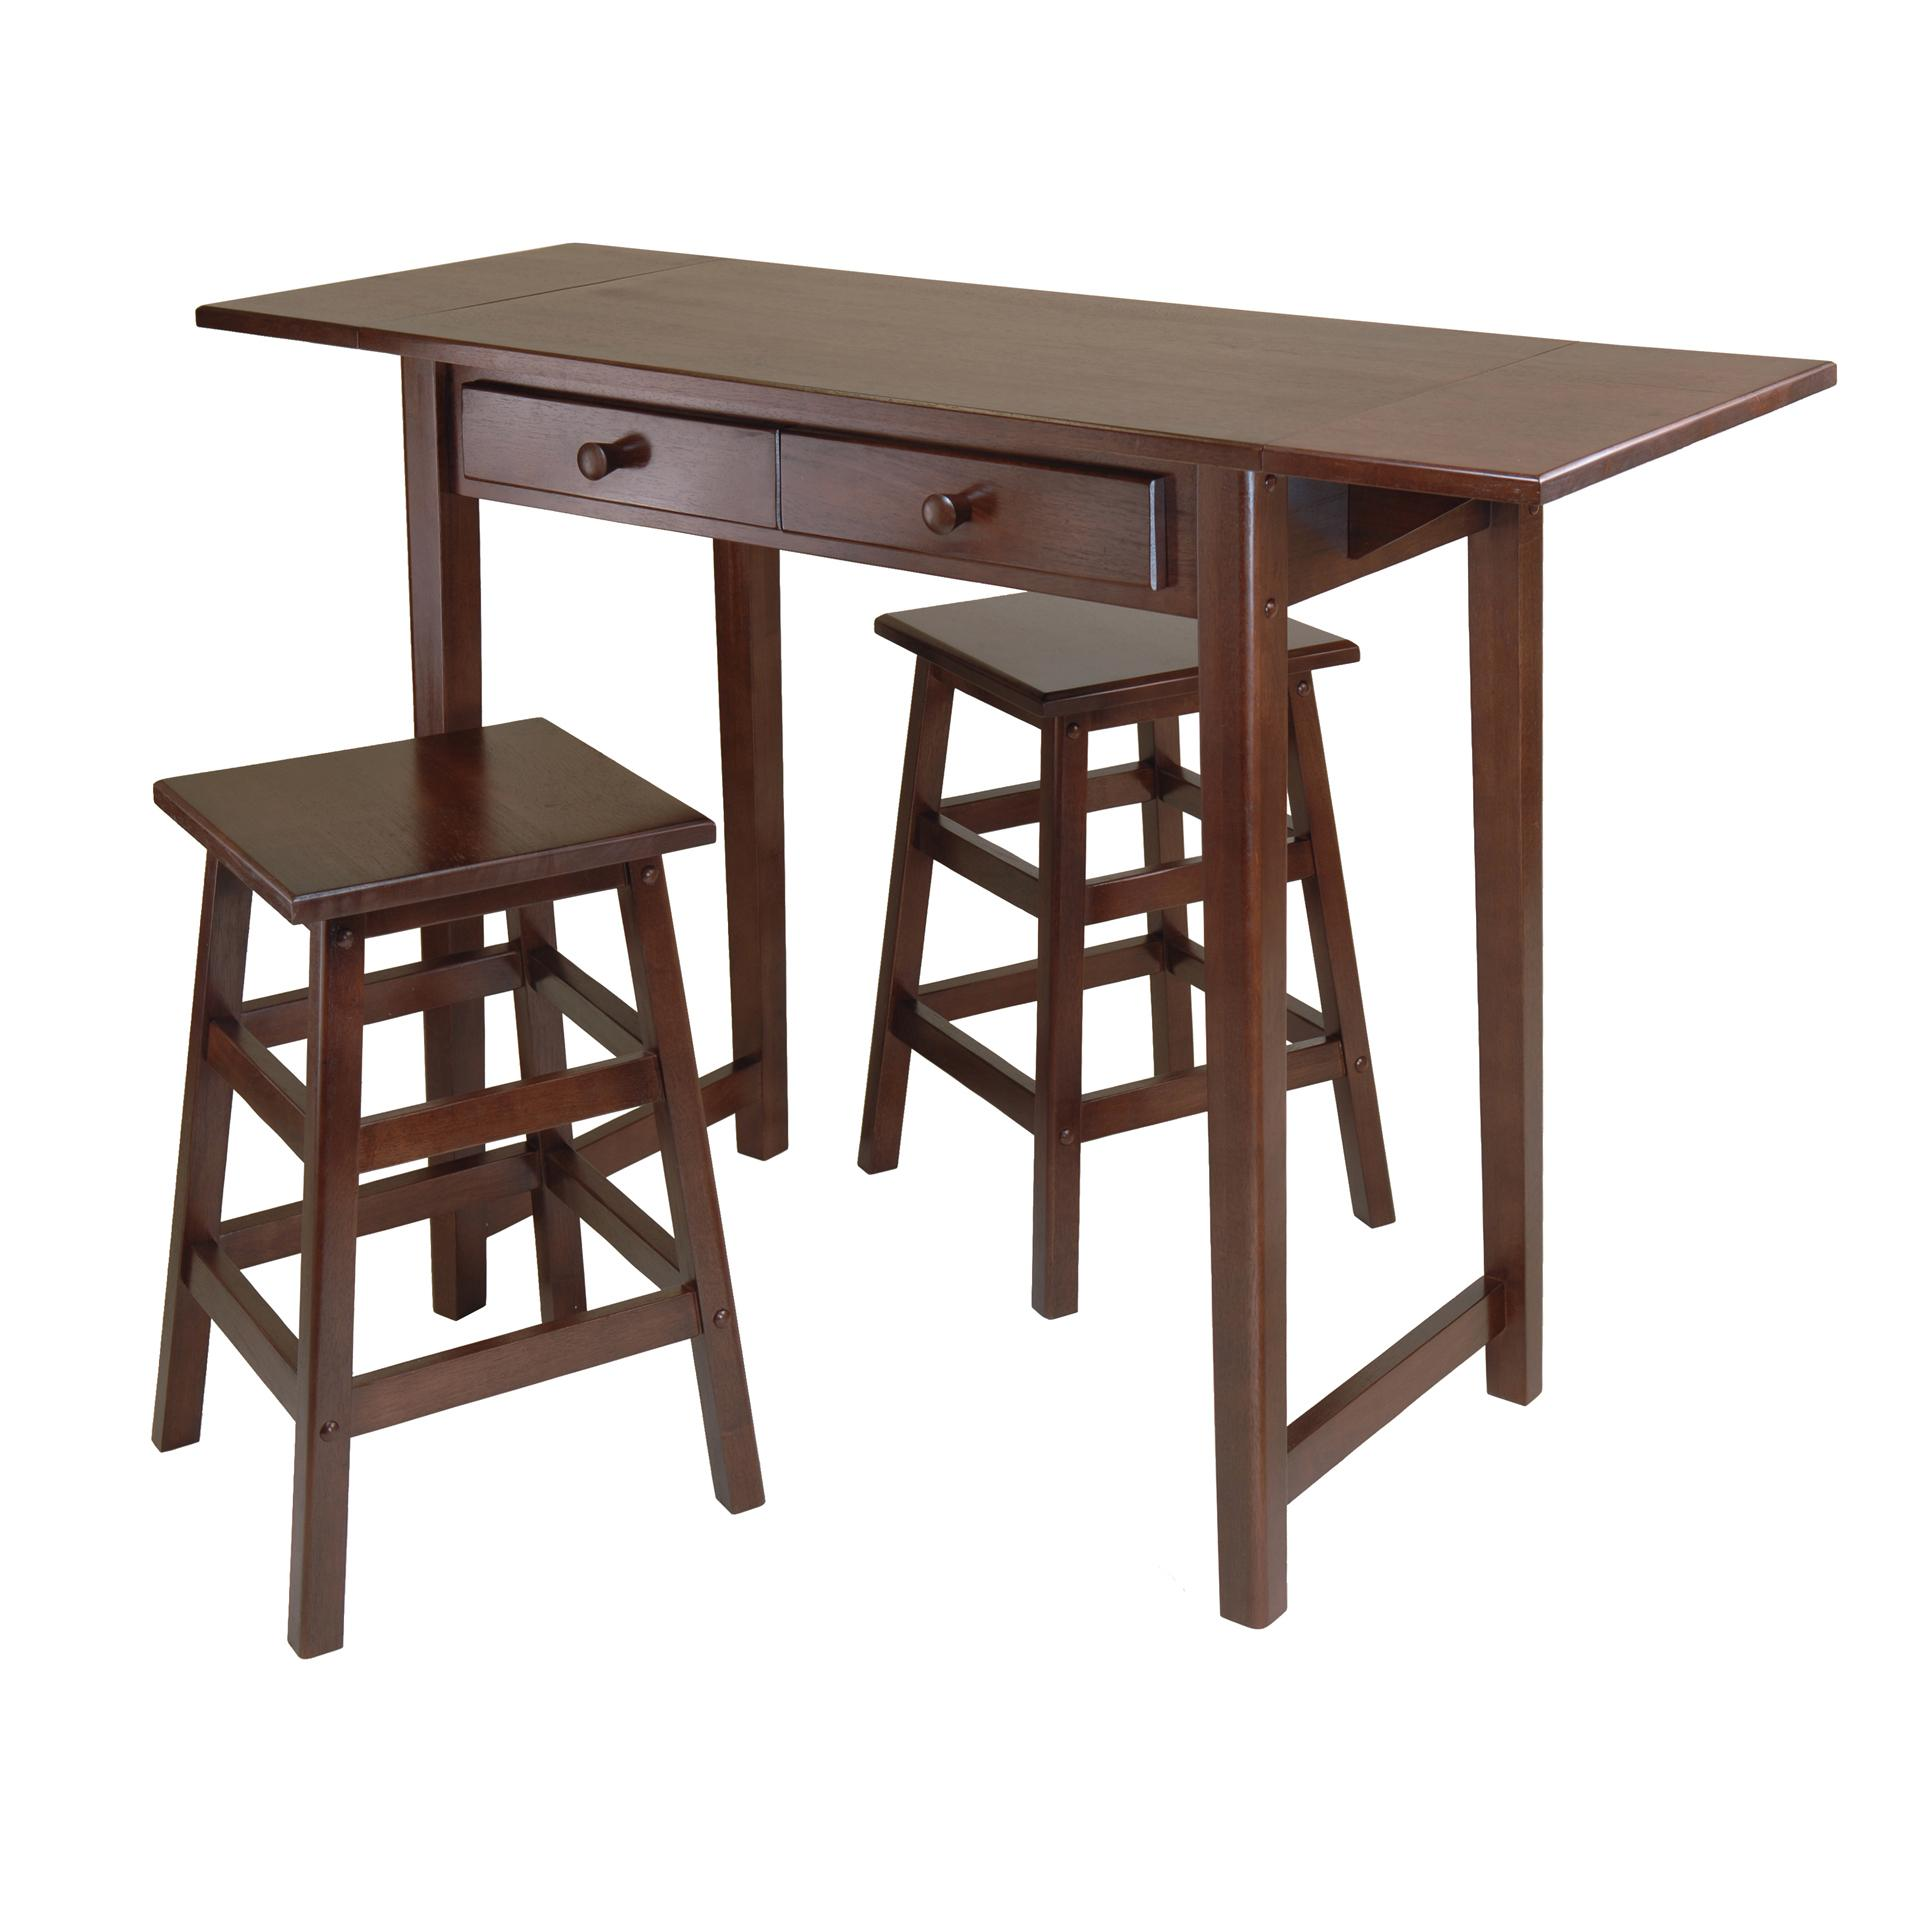 Winsome Wood Mercer Double Drop Leaf Table with 2 Stools Amazon